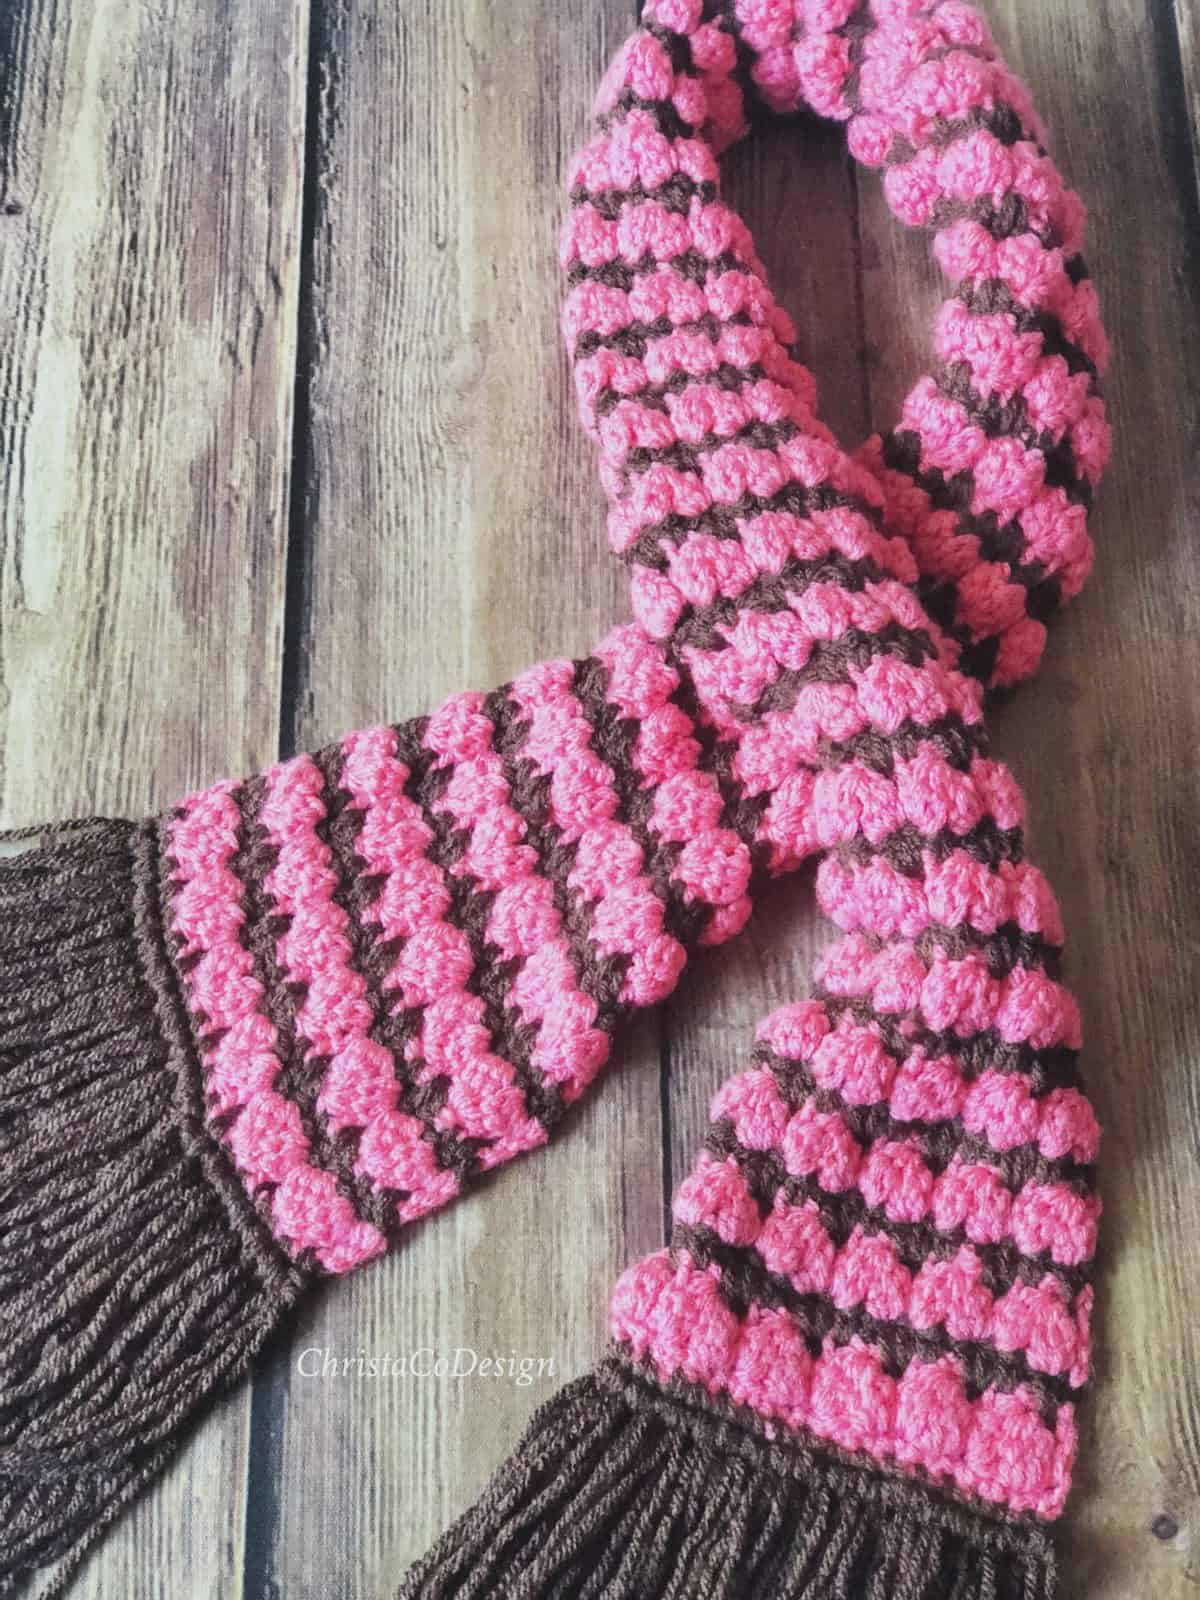 picture of pink and brown crochet scarf with fringe